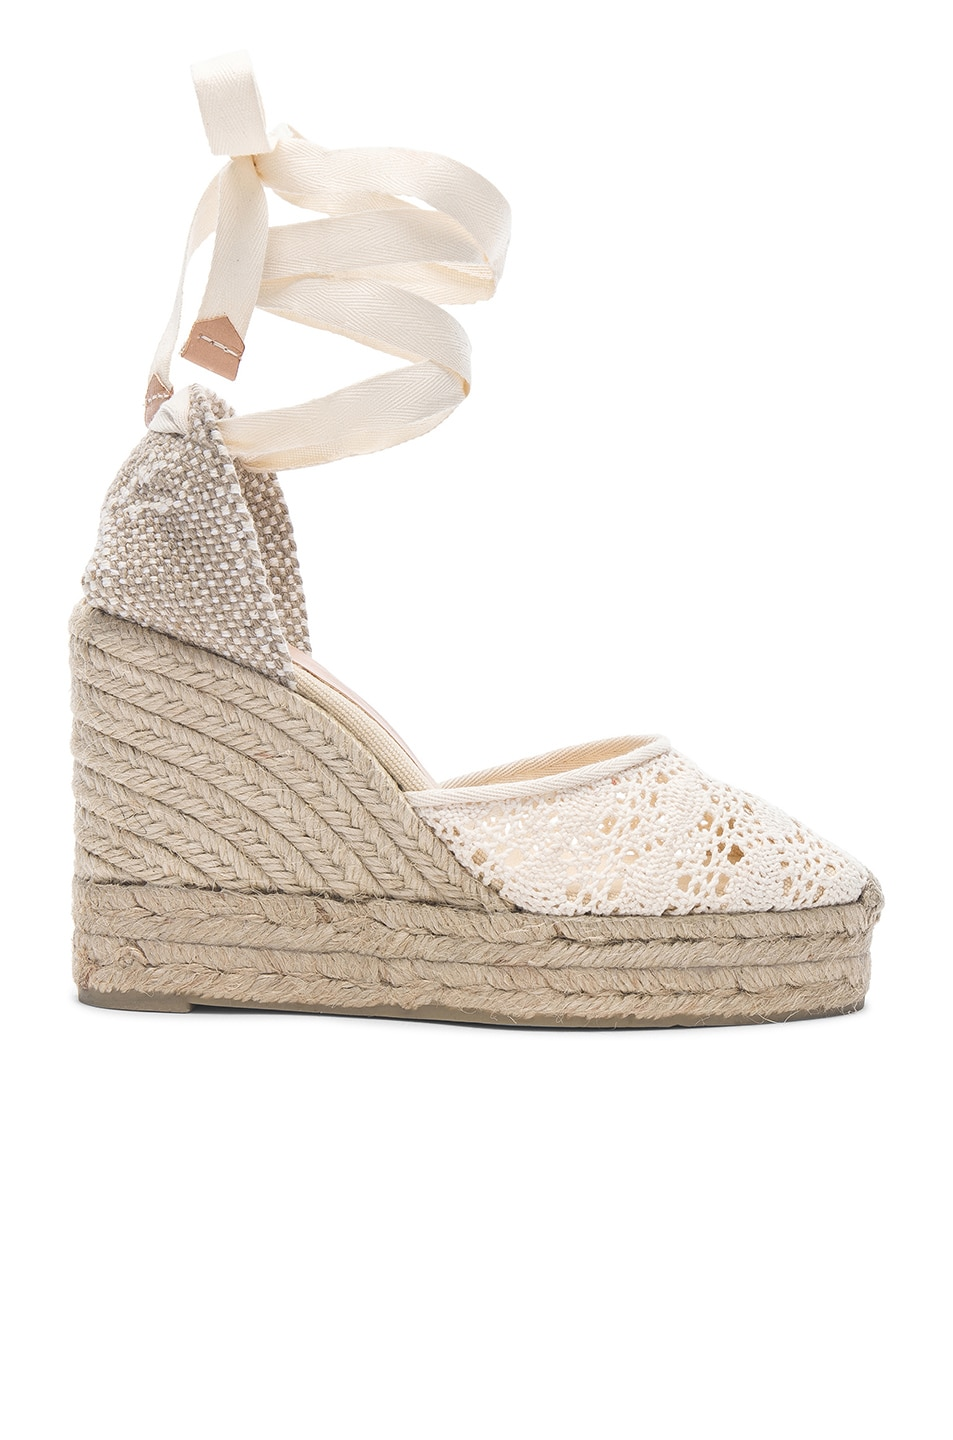 88d8b895614 Image 1 of Castaner Crochet Lace Carina Wedge Espadrilles in Natural